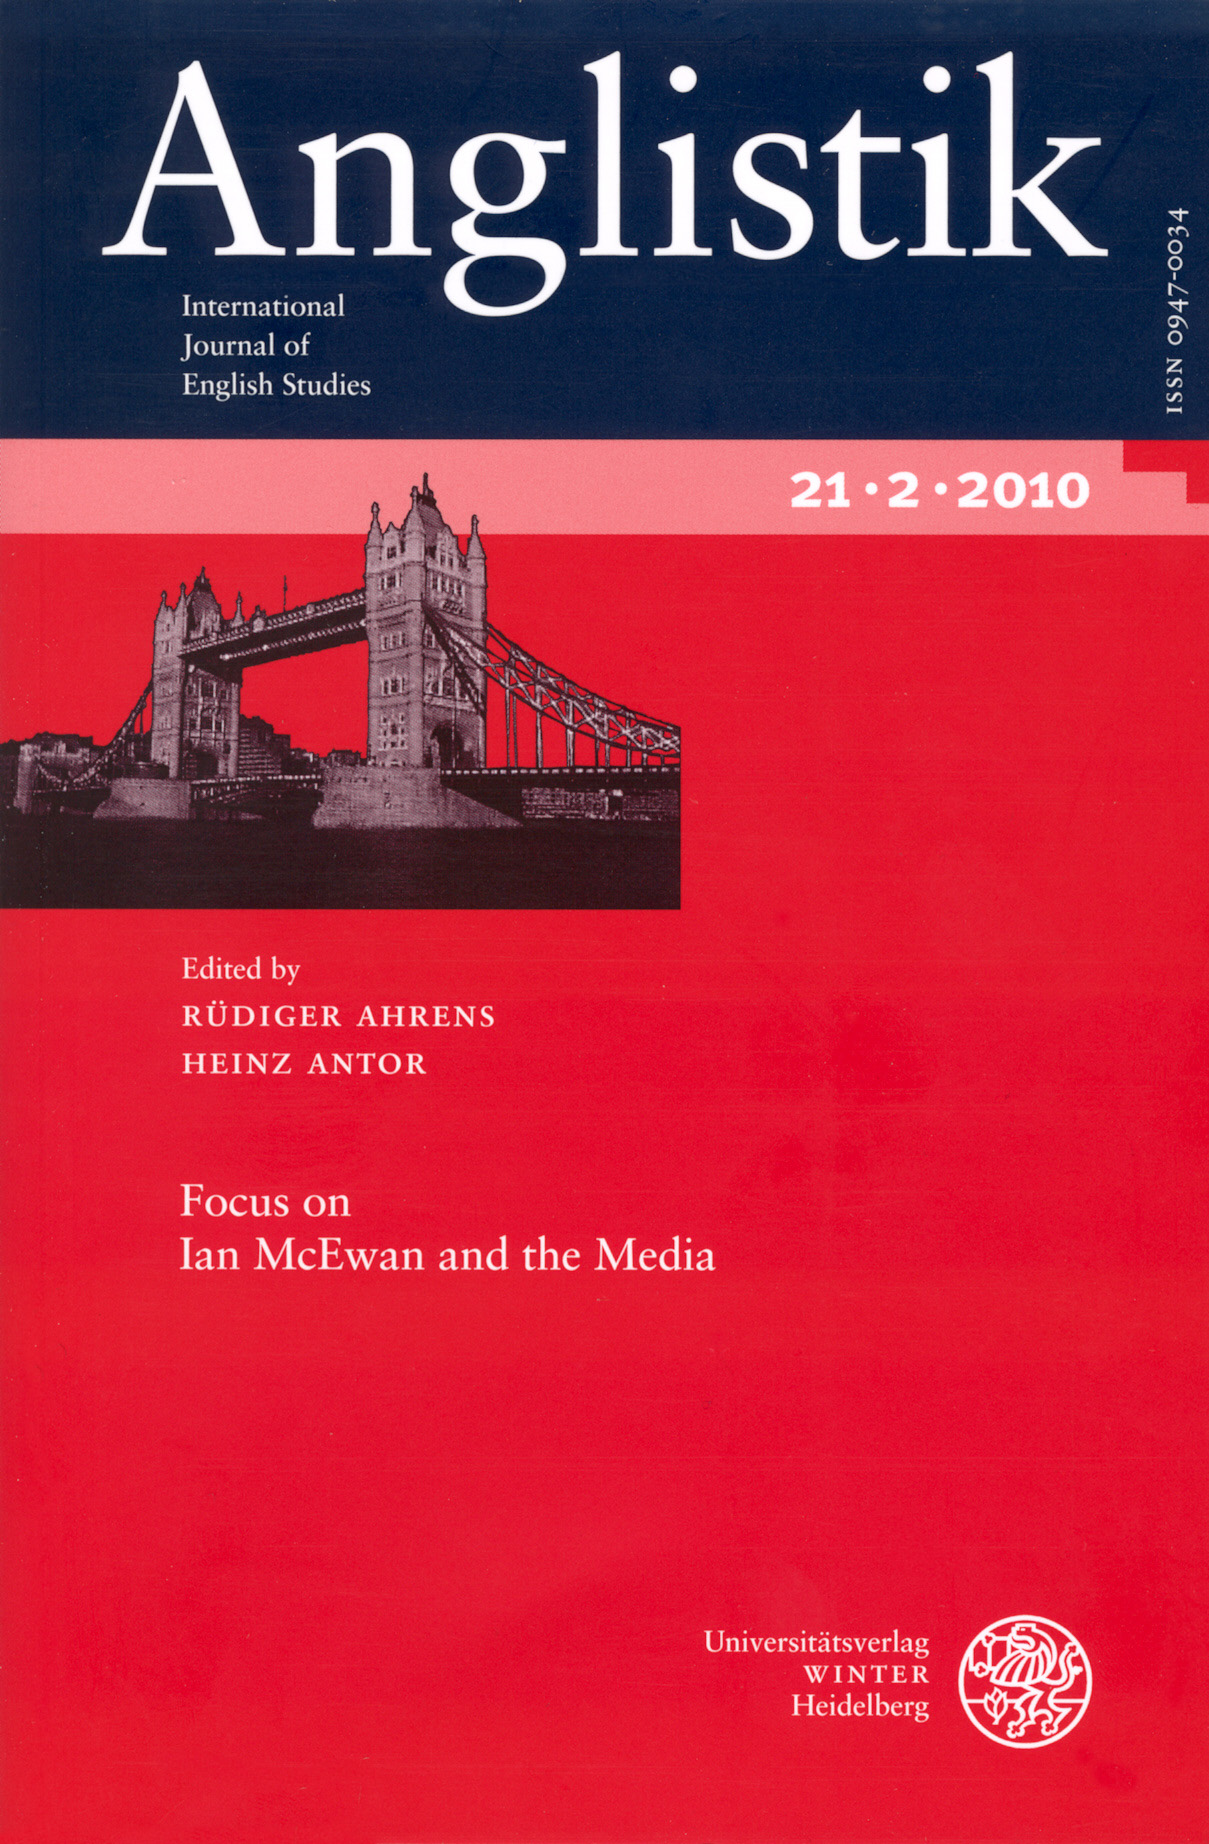 Anglistik with a focus on Ian McEwan and the Media